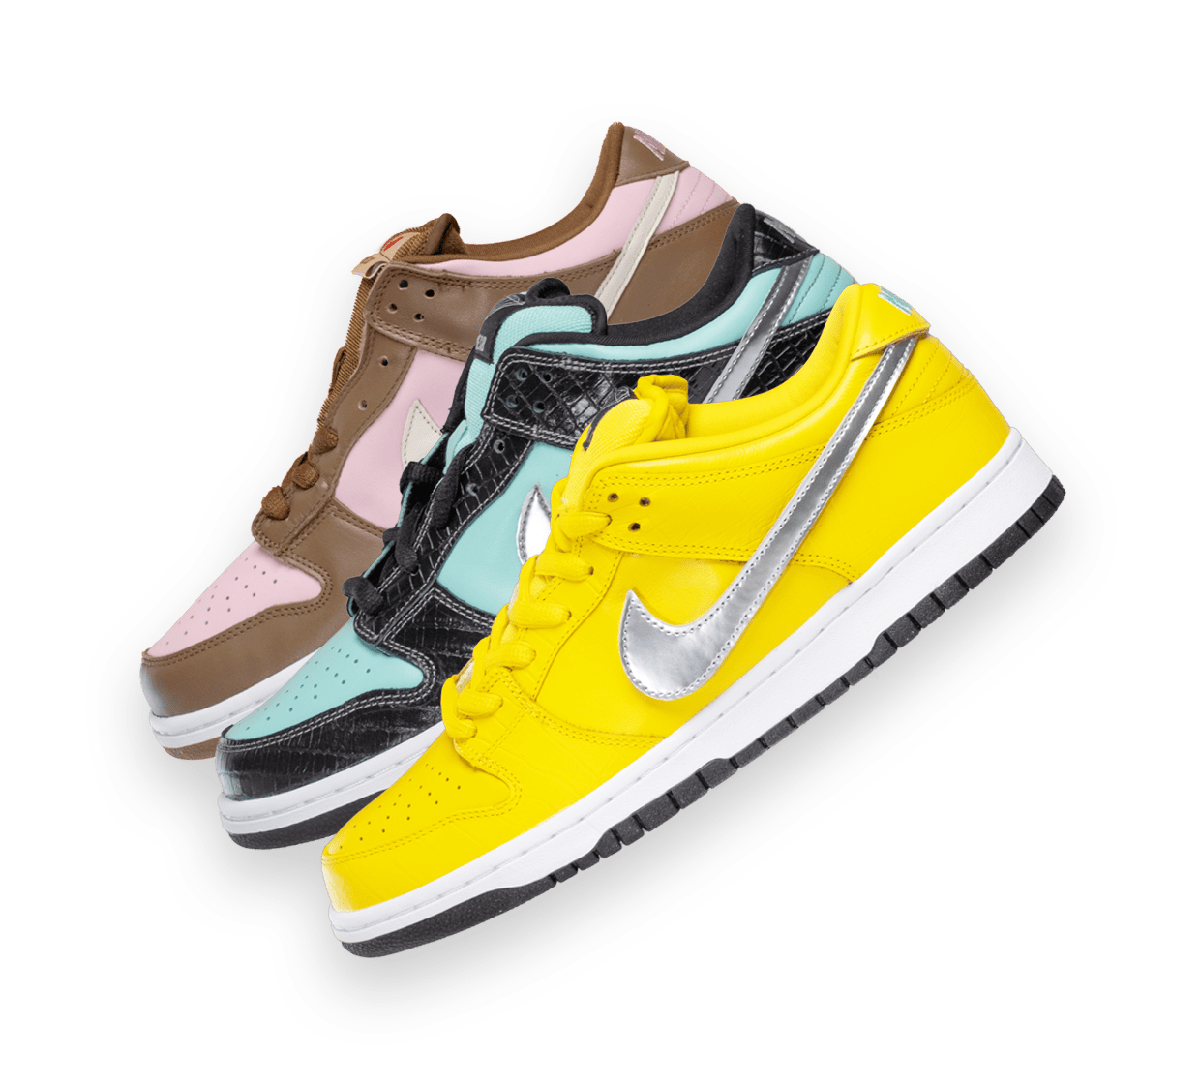 Iconic Nike SB Dunk Low Collection Image